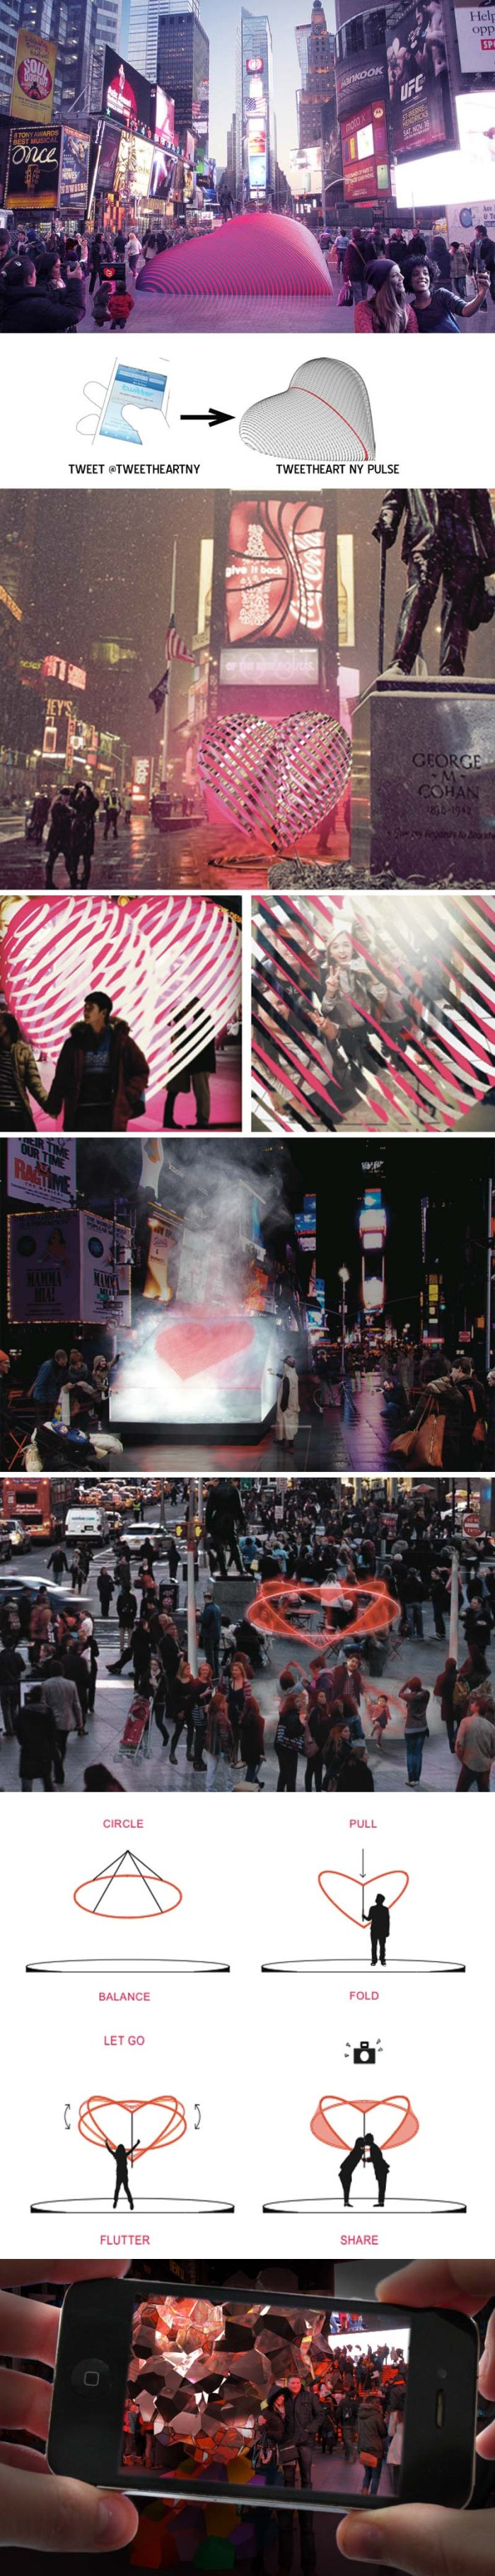 Times Square Valentine Heart Sculpture Competition 2014, Finalists, Young Projects,  Haiko Cornelissen Architecten; Pernilla Ohrstedt Studio; Schaum/Shieh Architects; SOFTlab; and The Living.Interactive sculpture shaped as heart, NYC